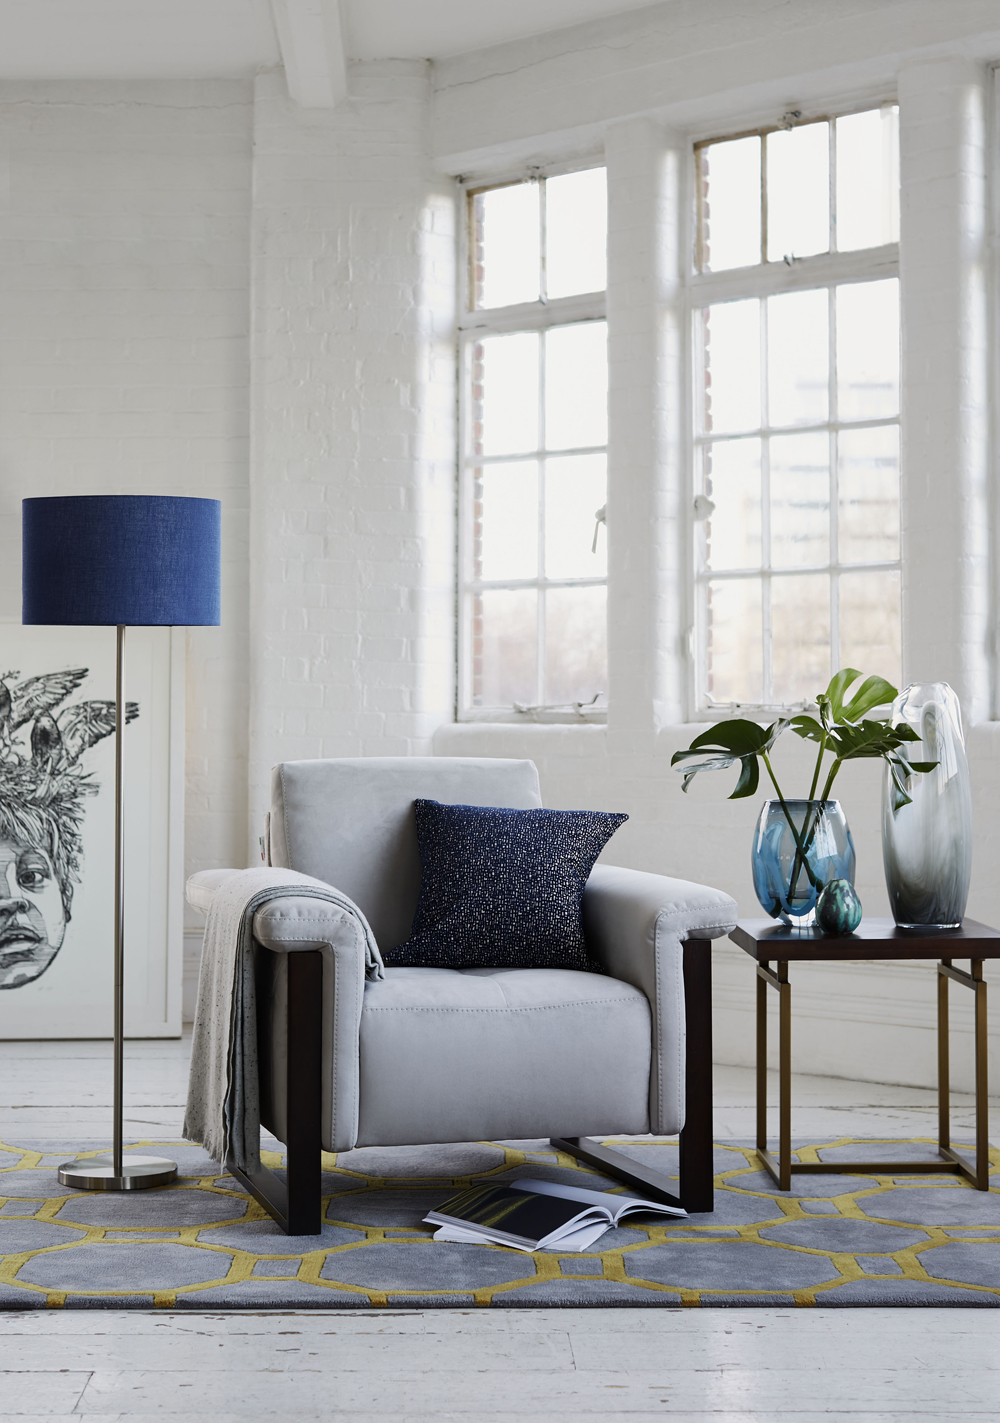 Today I'm introducing the brand new exclusive Nicoletti Home collection for Furniture Village, which captures everything I love about Modern Italian interior design. Discover more here.